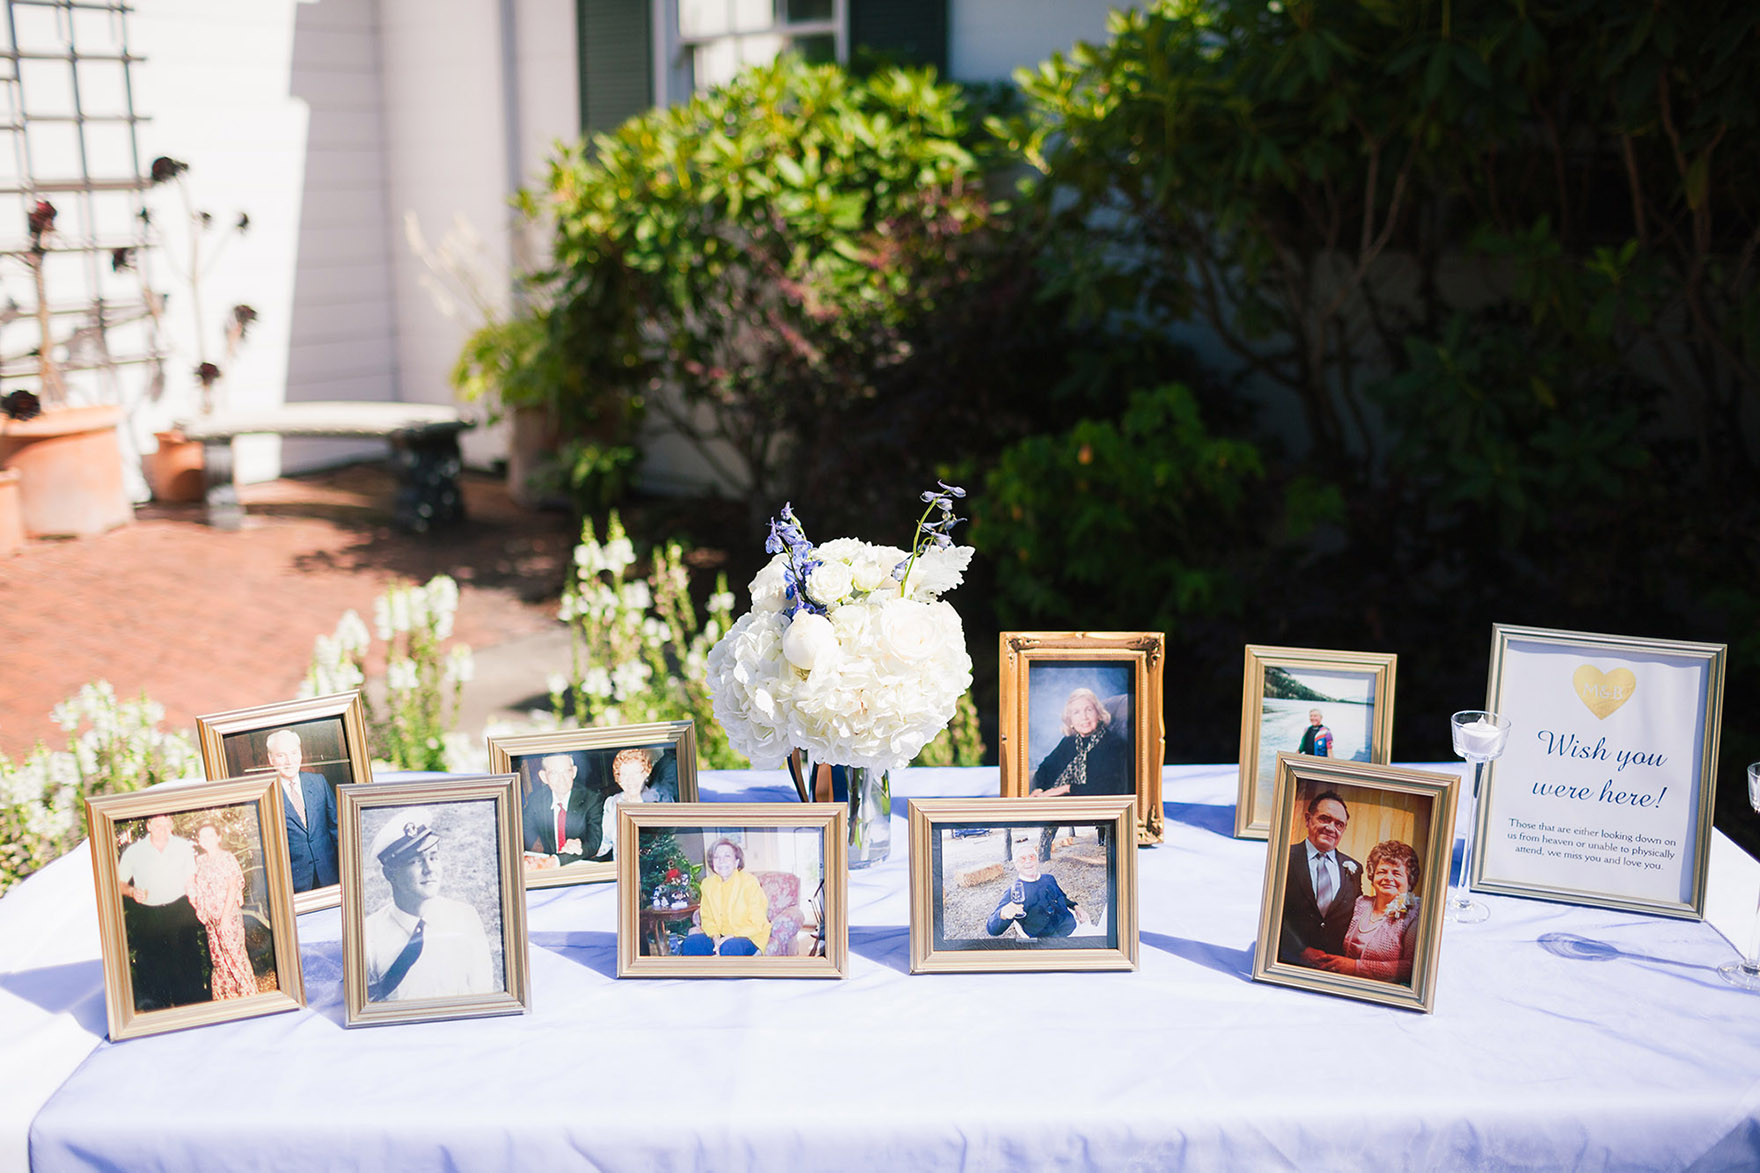 arrangement of picture frames and vases with flowers decorate a welcome table at the pasatiempo golf course at the bride and groom newlywed hollins house wedding the perfect santa cruz wedding venue